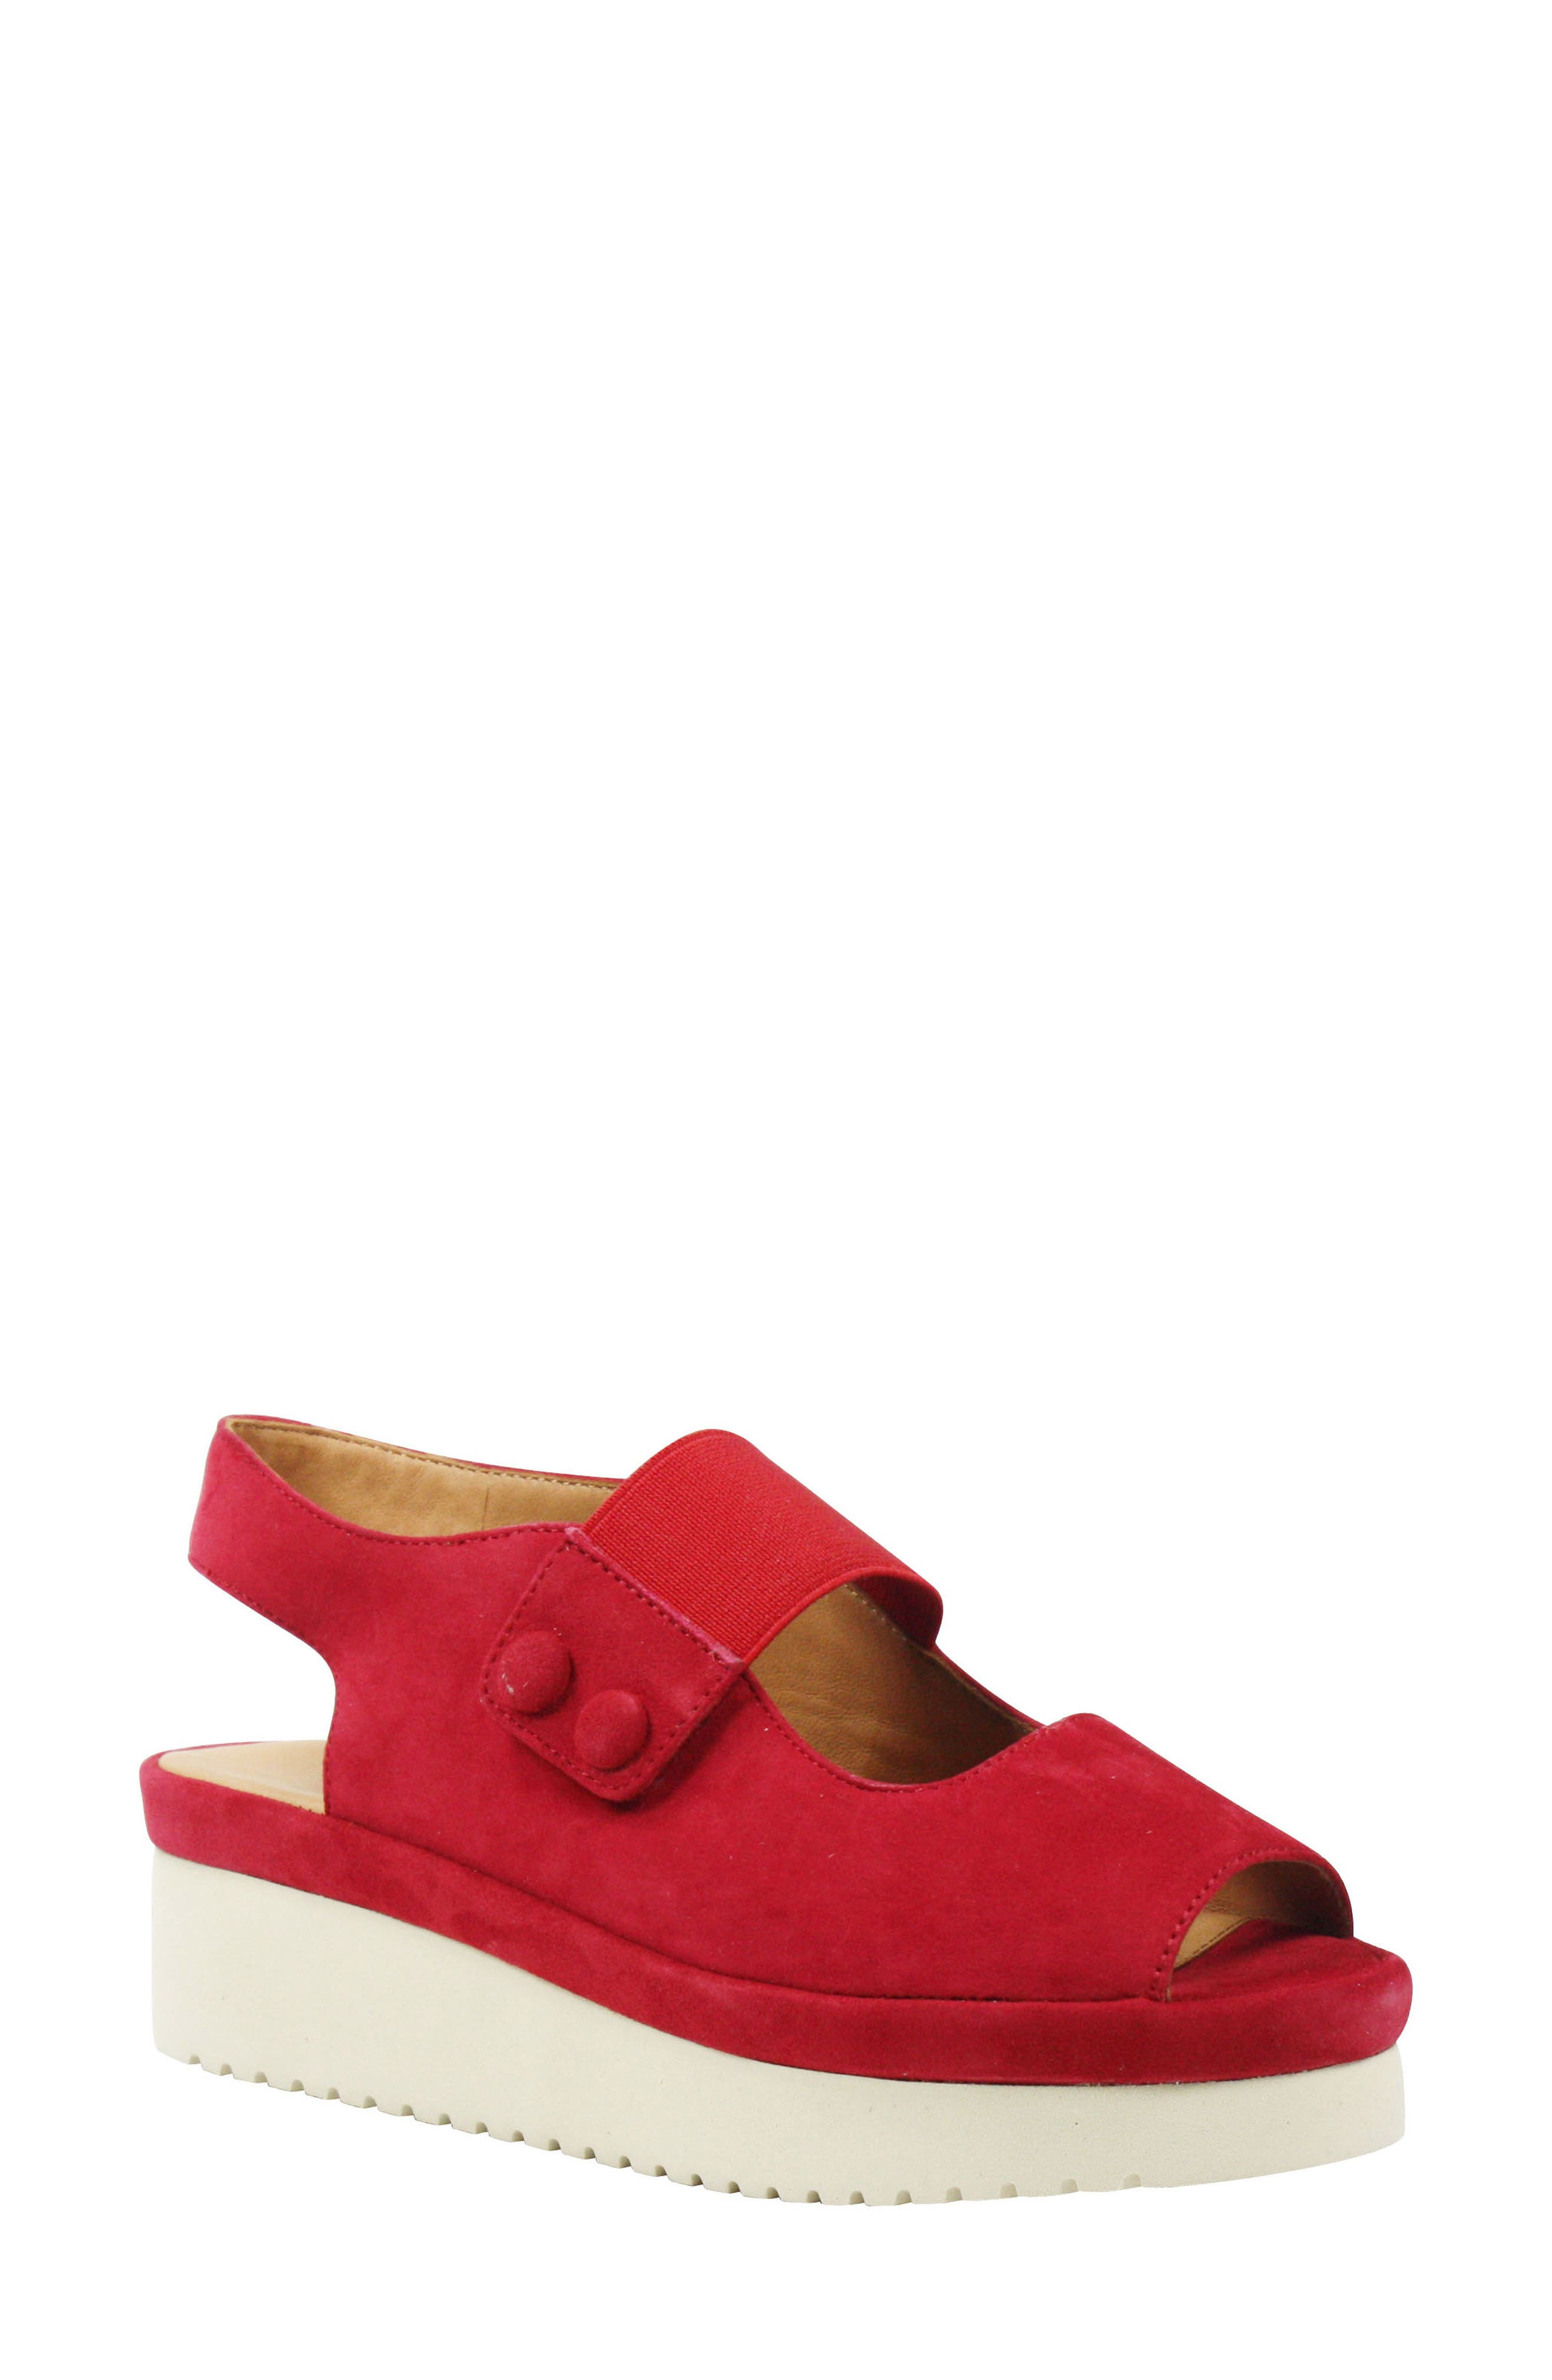 Adalicia Platform Sandal,                             Main thumbnail 1, color,                             Bright Red Suede